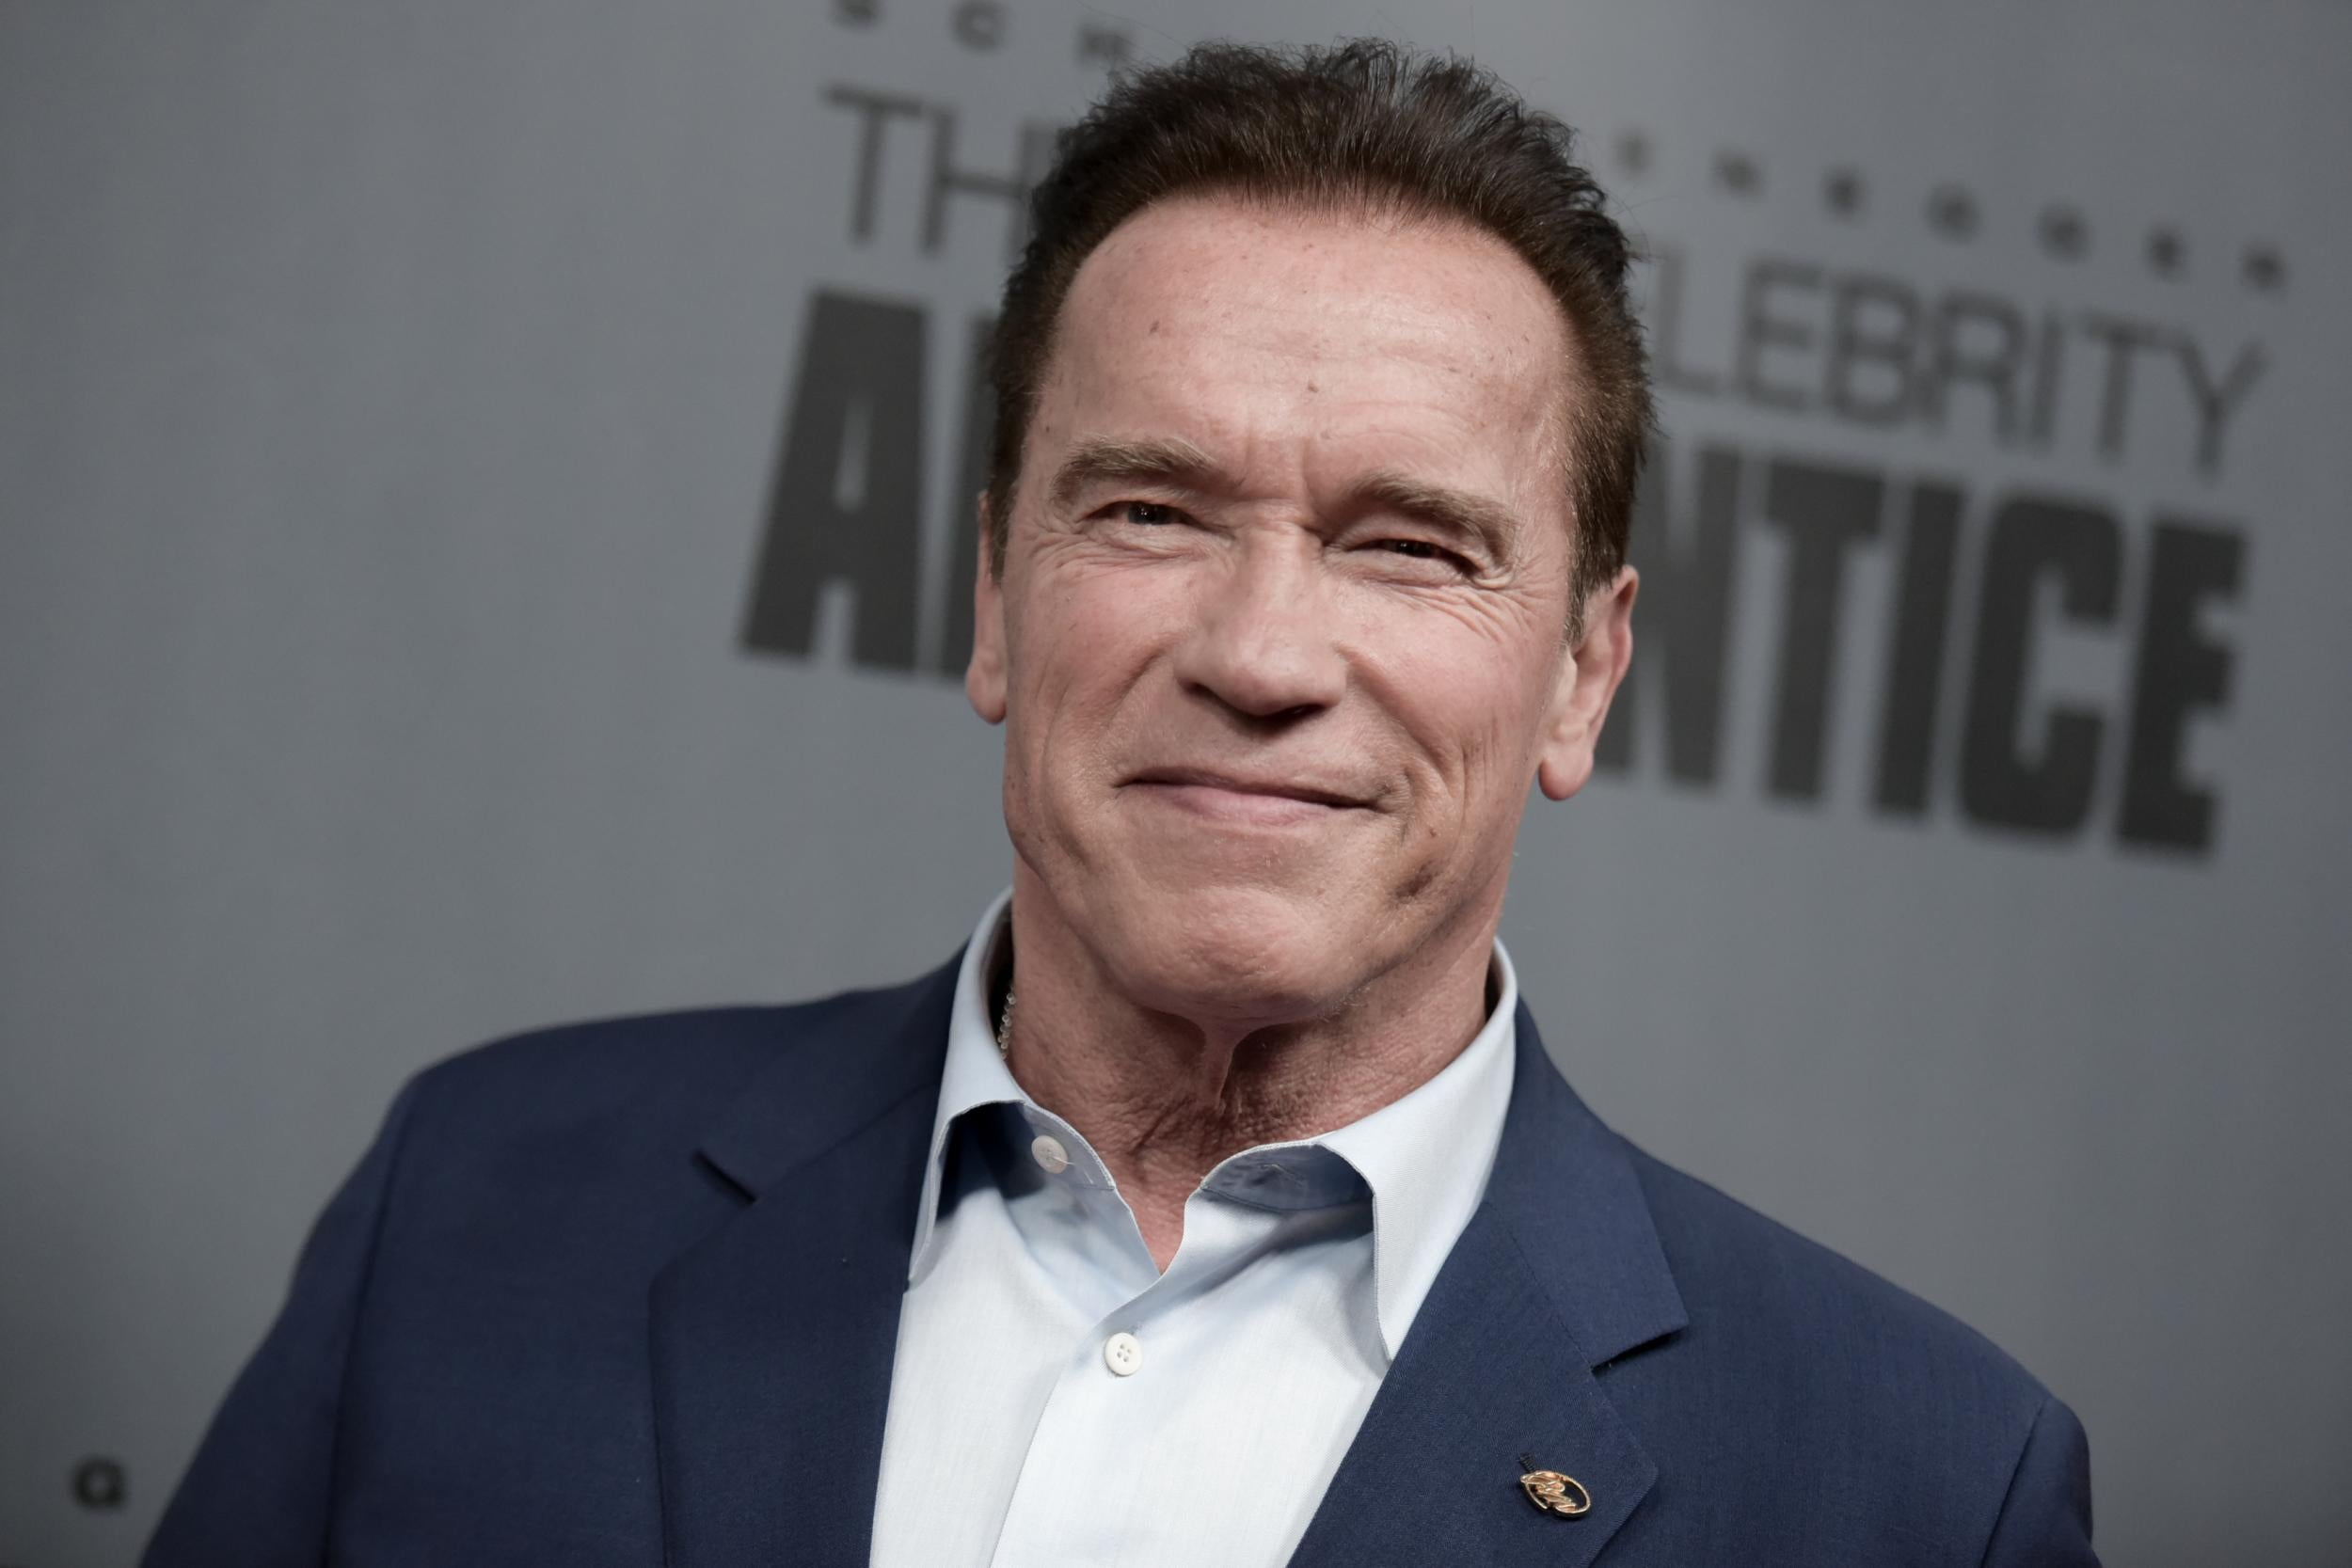 Donald trump s celebrity apprentice replacement arnold schwarzenegger takes aim at travel ban the independent